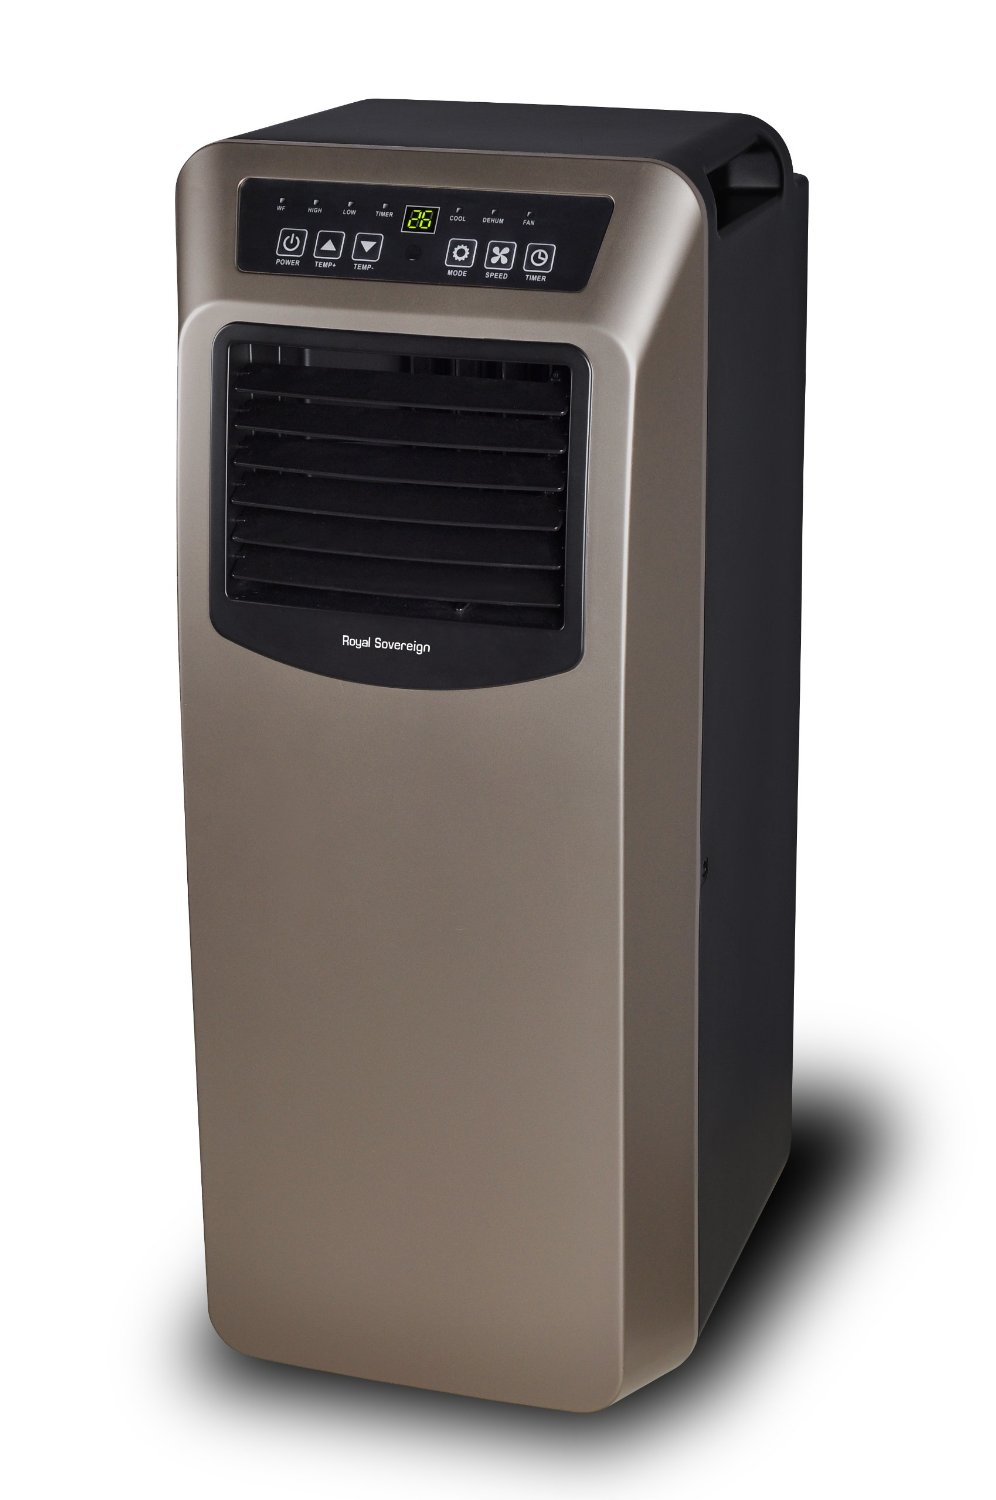 Royal Sovereign 14,000 BTU 3-in-1 Portable Air Conditioner, Dehumidifier, Fan, Window Kit & Remote Control Included, Black & Silver (ARP-7014)